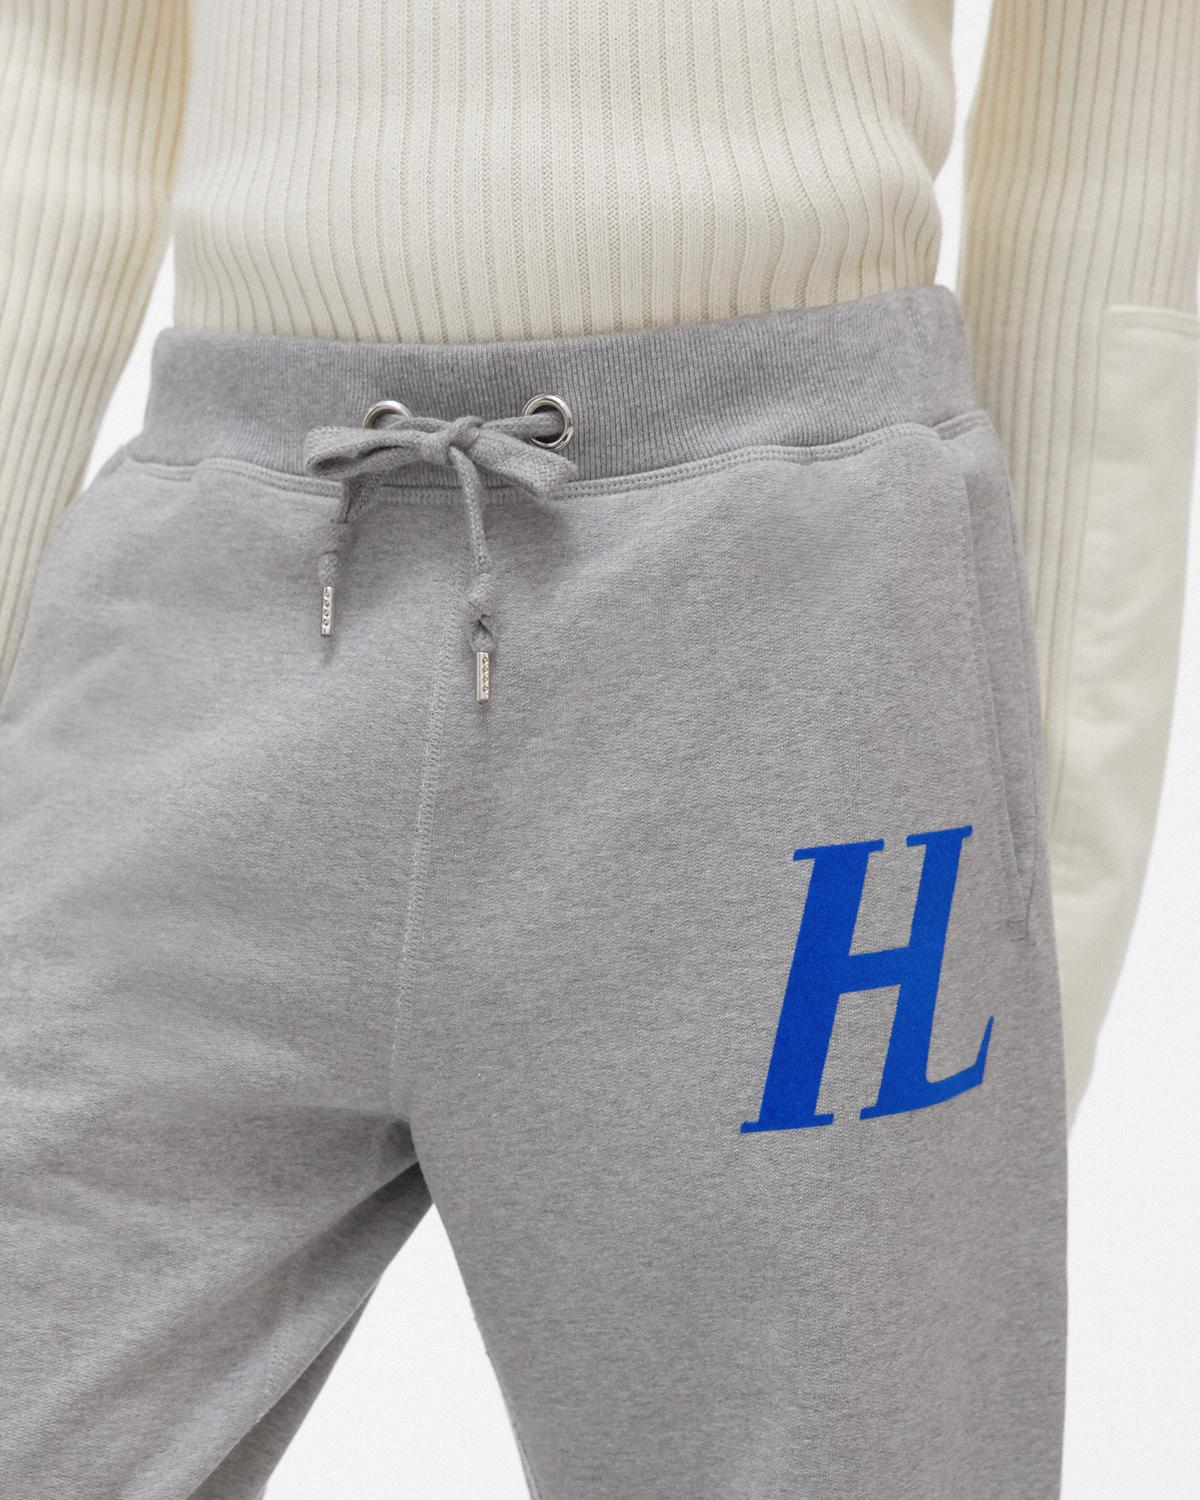 Monogram Sweatpants